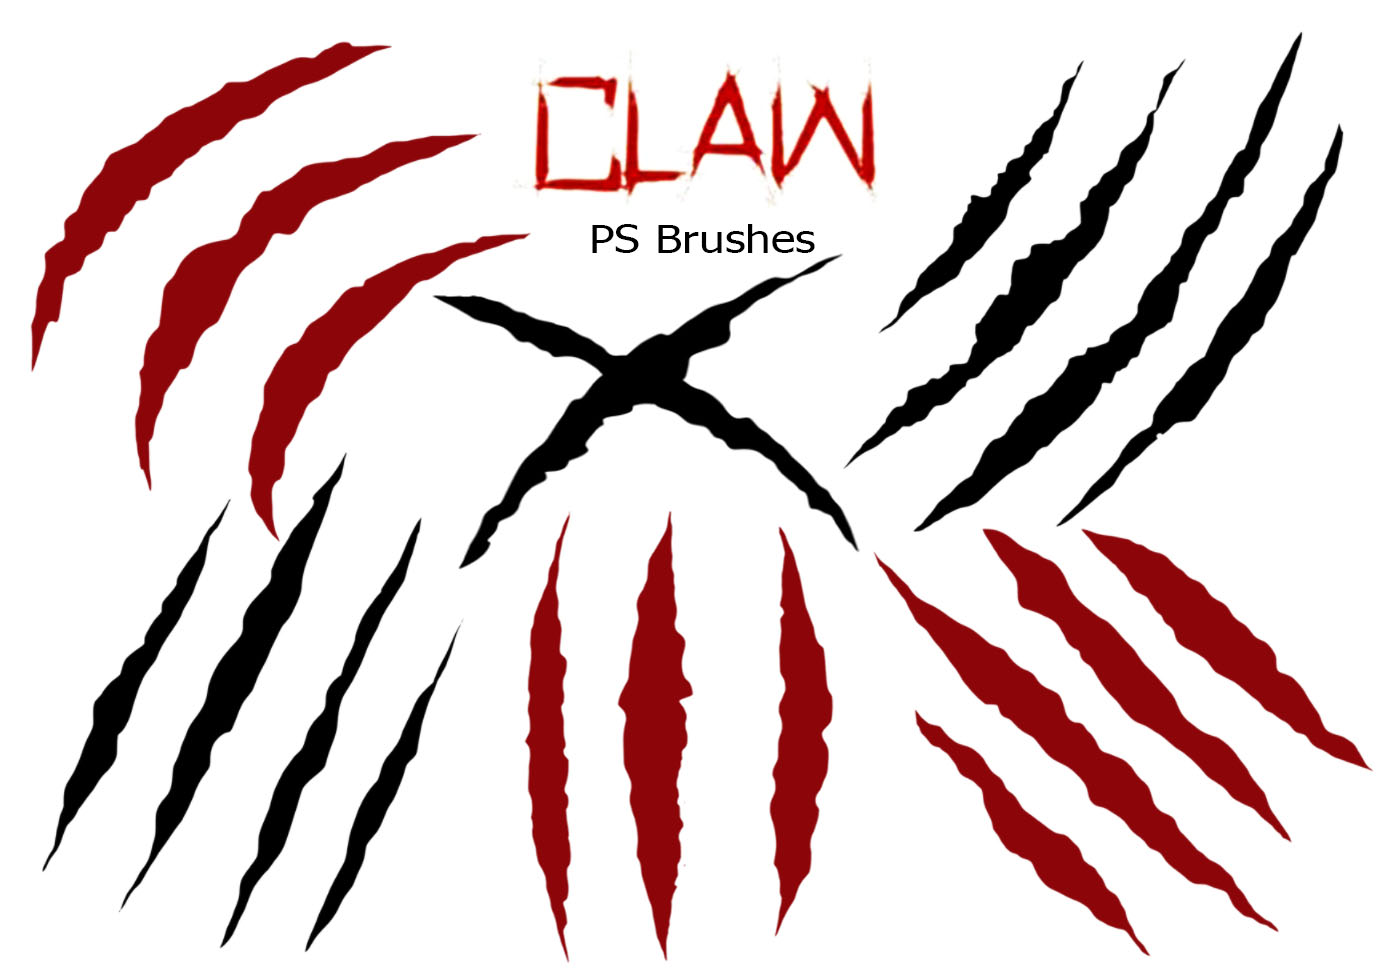 Claw marks through paper